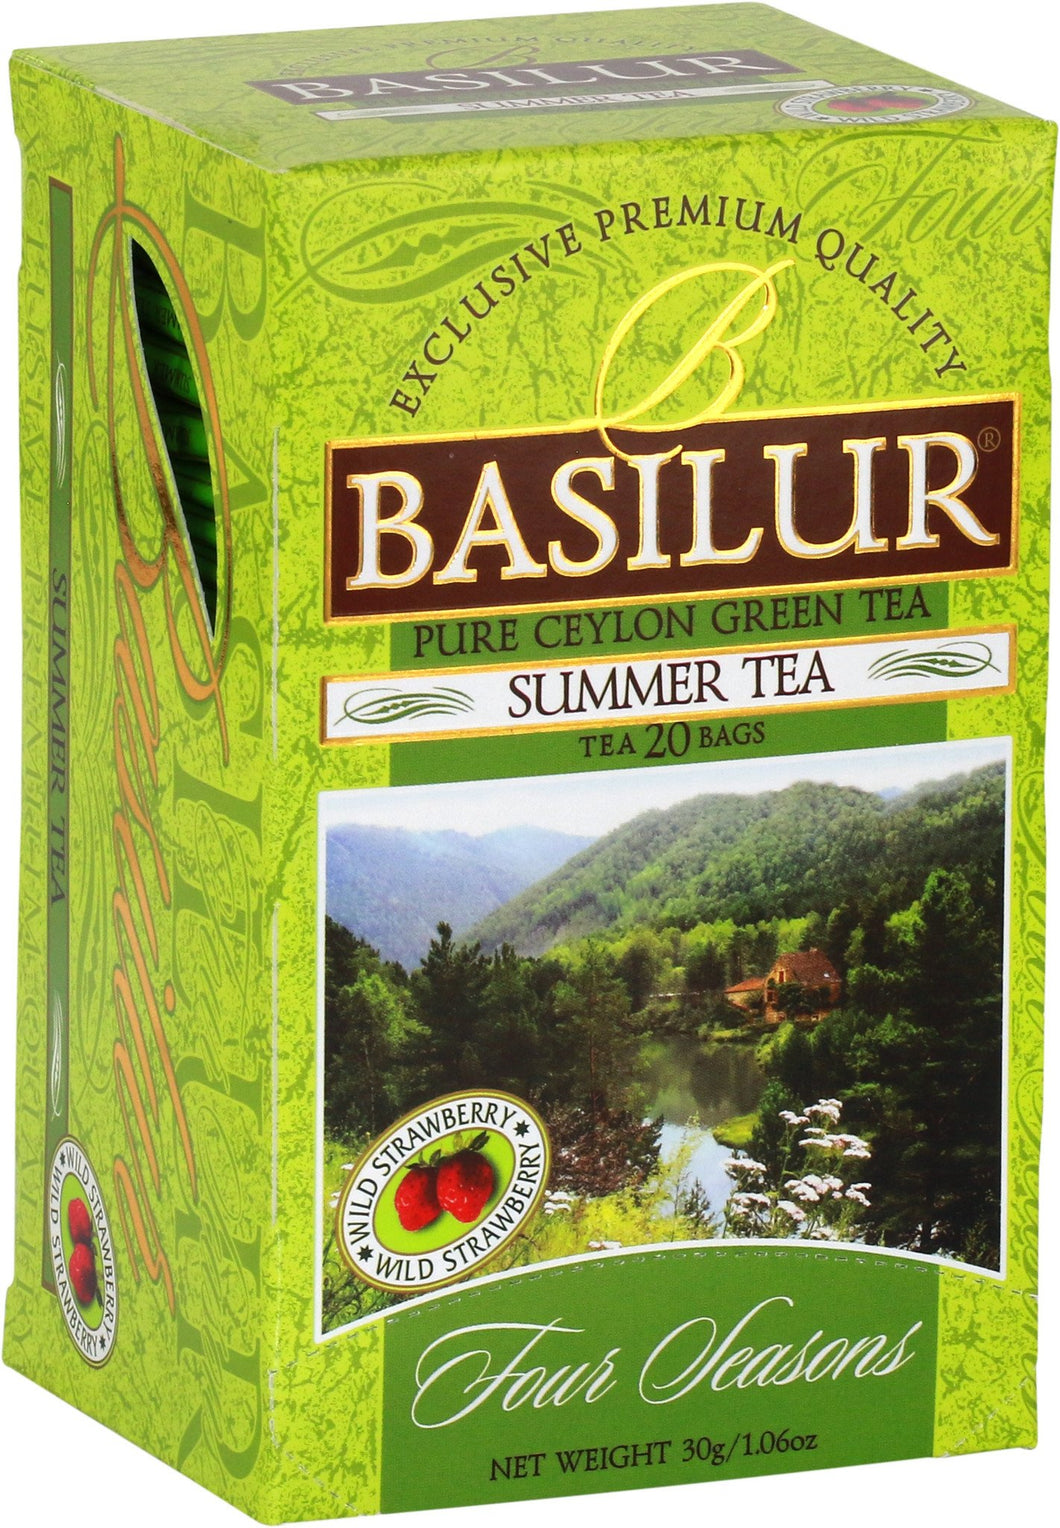 SUMMER TEA - green tea with wild strawberry, 10 or 20 tea bags